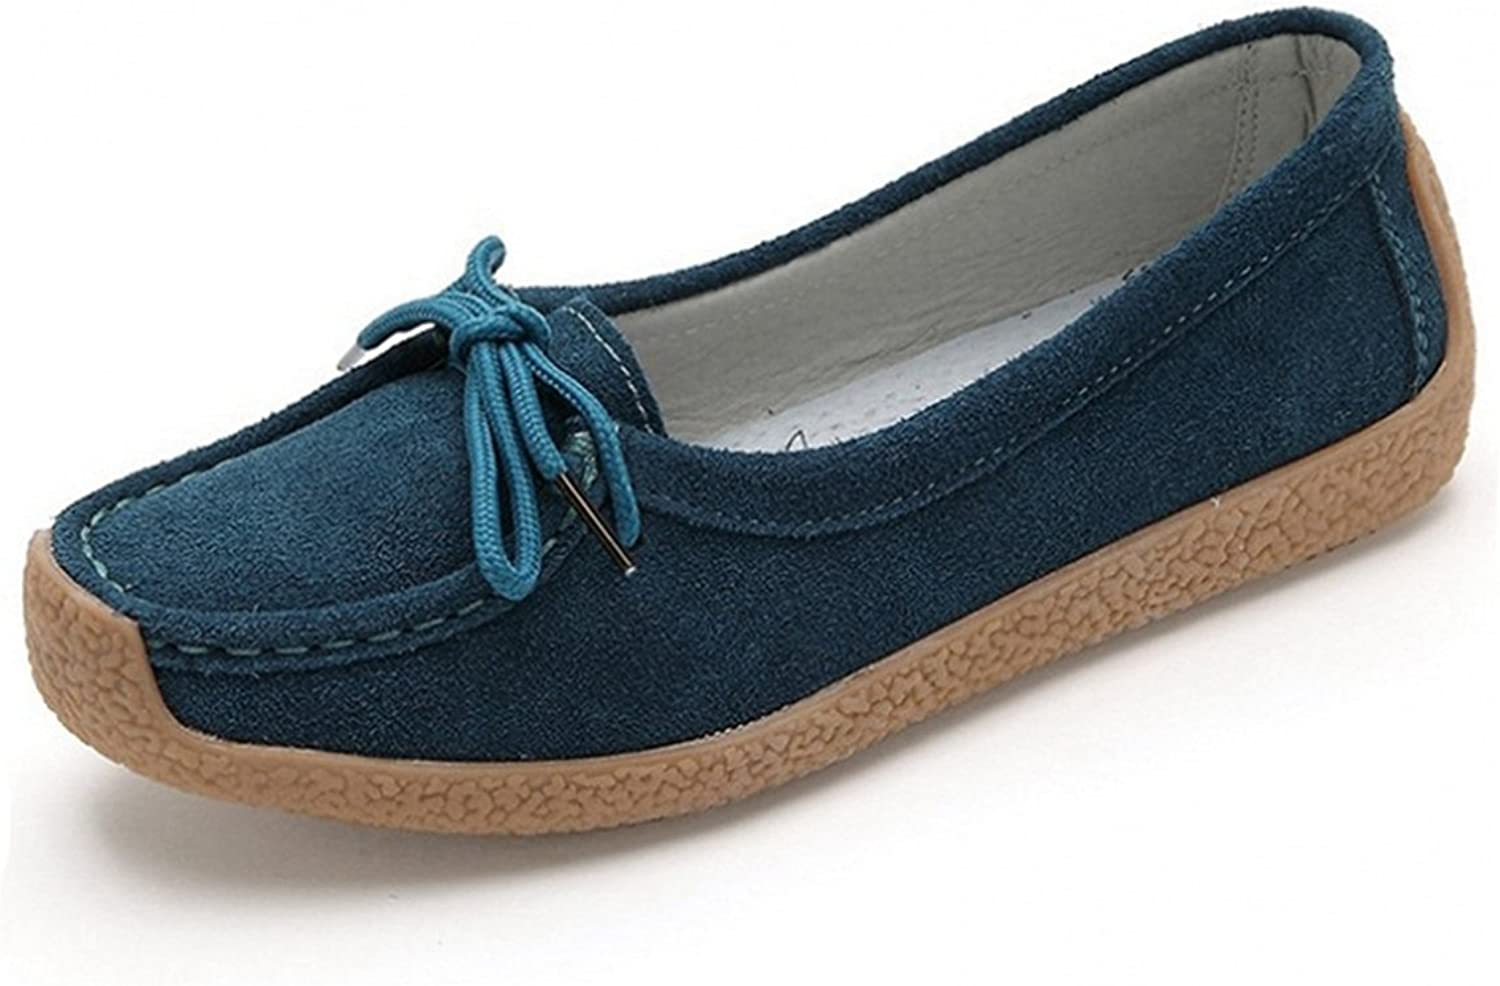 York Zhu Lace-up Loafers for Women, Slip on Suede Moccasins Woman Loafers shoes